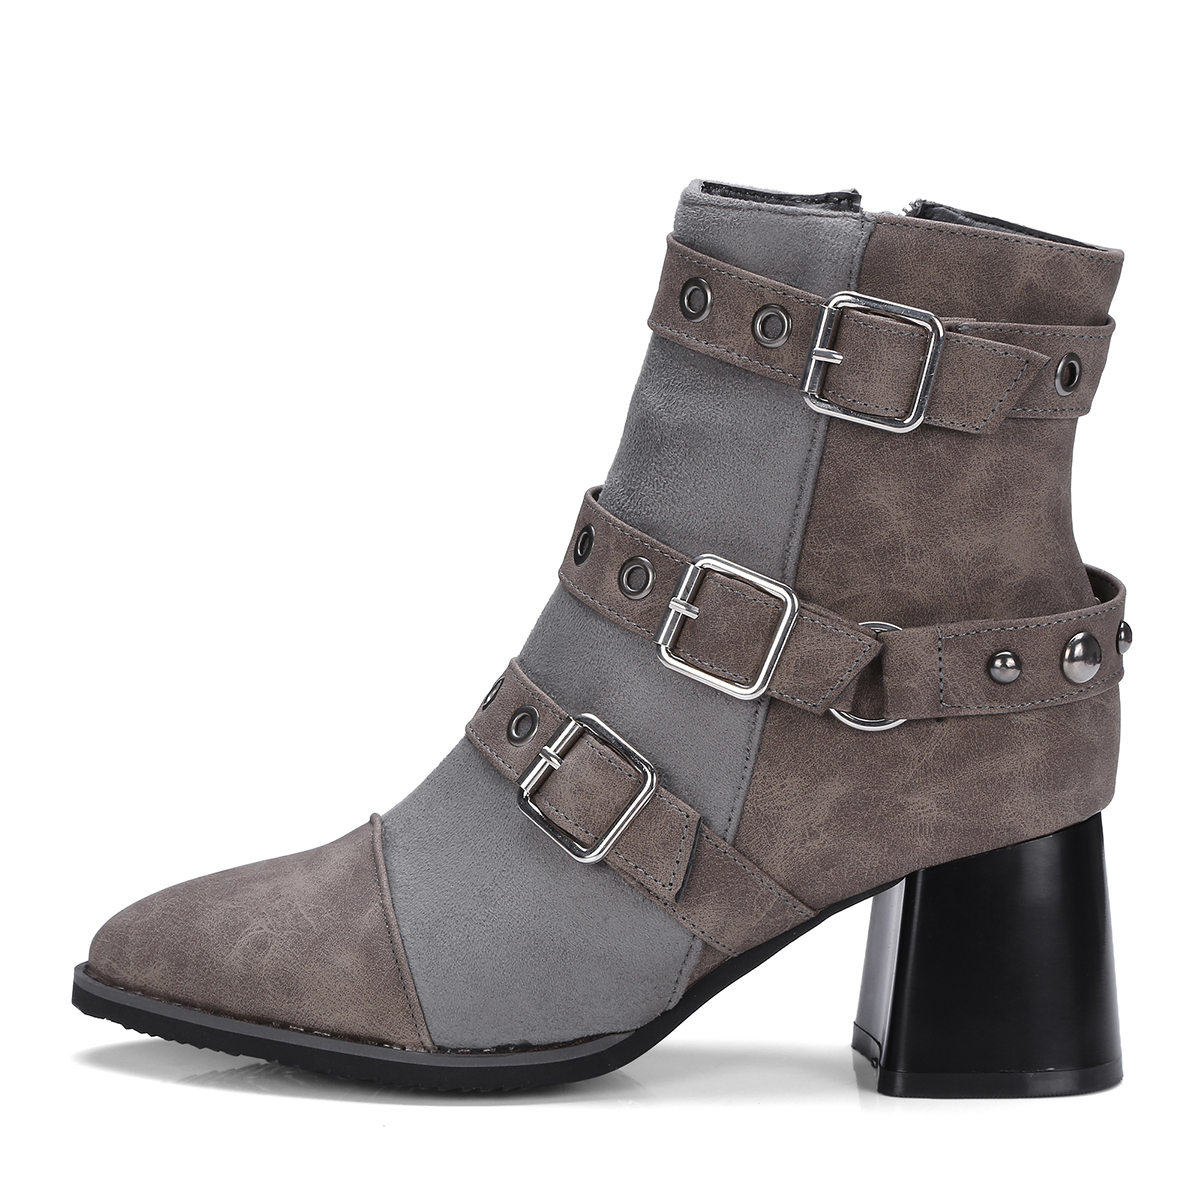 Ladies Pu Leather Ankle Boots Thick High Heel Fashion Bootie Pointed Toe Zip Winter Women Shoes Gray Black Drap Shipping